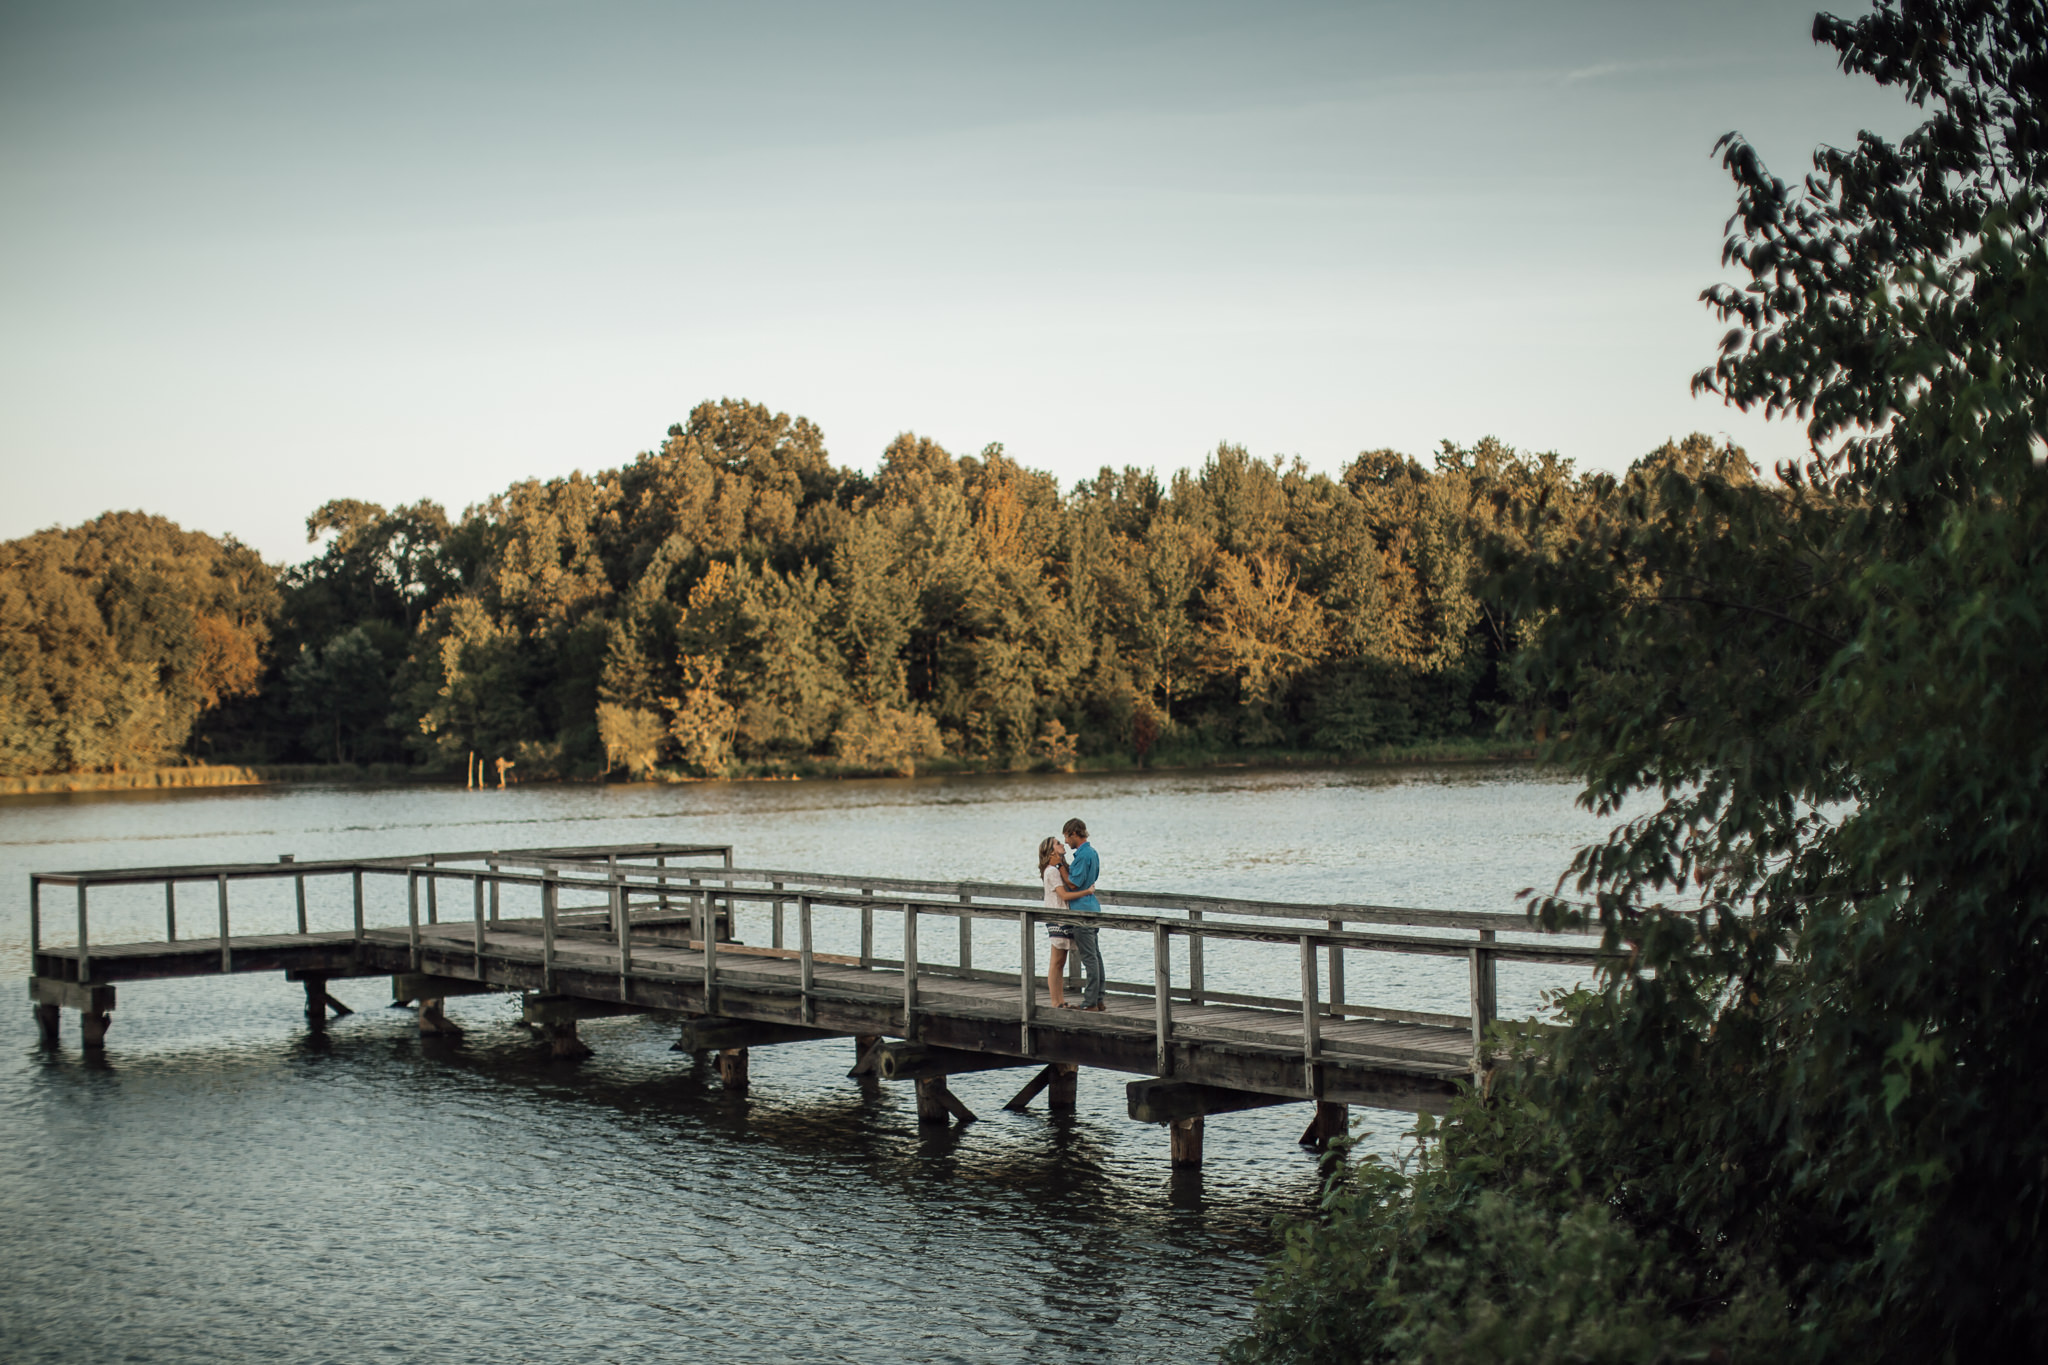 cassie-cook-photography-shelby-farms-engagment-pictures-memphis-wedding-photographer-529.jpg